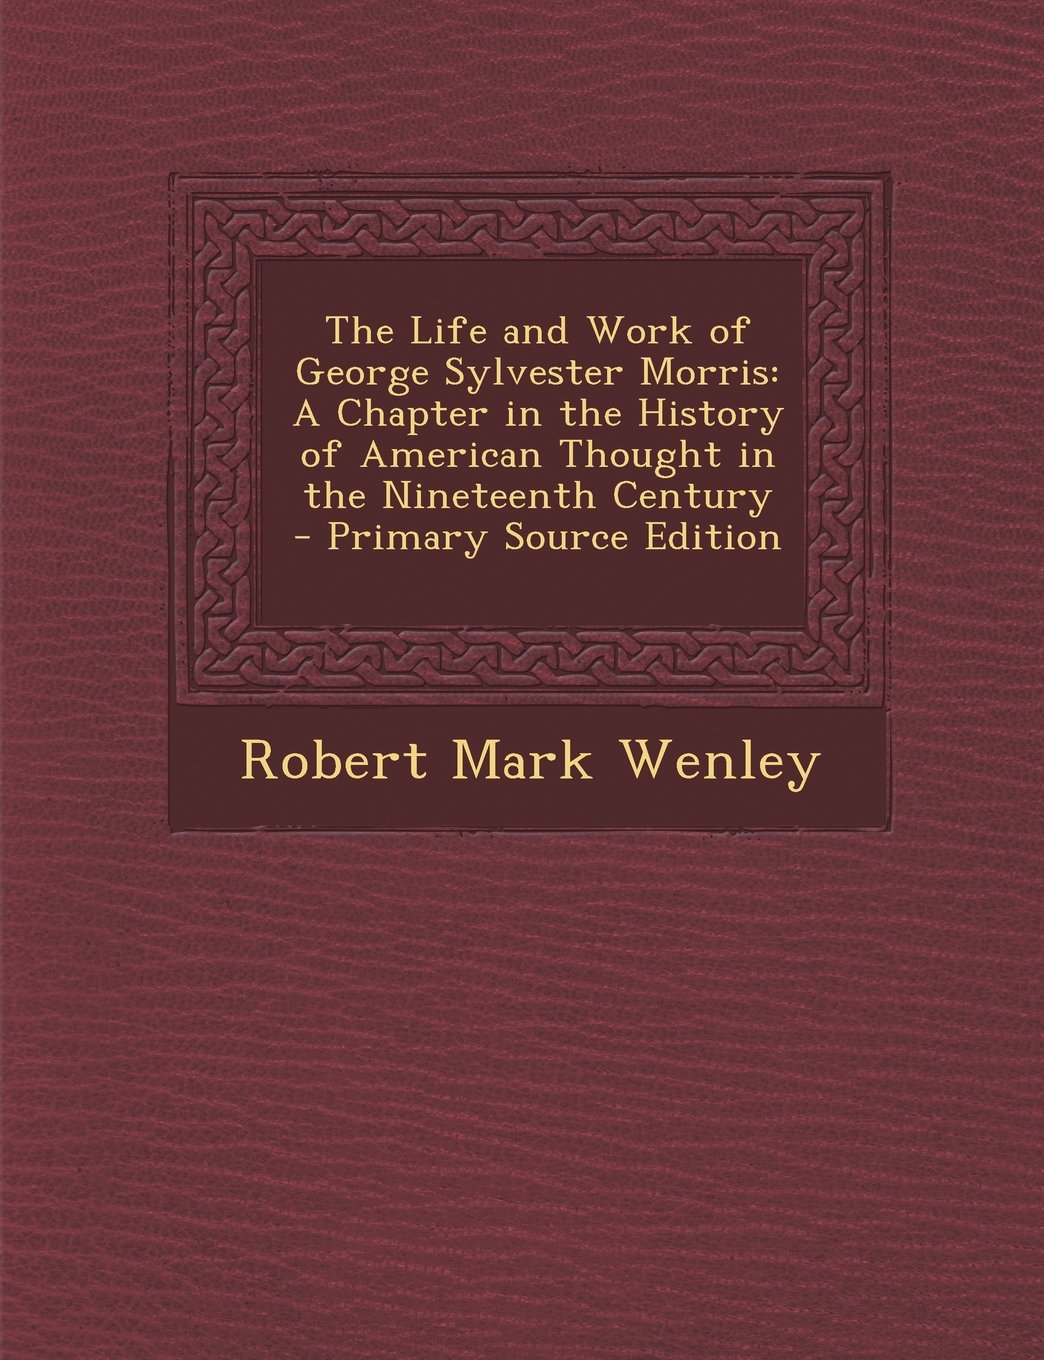 Download The Life and Work of George Sylvester Morris: A Chapter in the History of American Thought in the Nineteenth Century - Primary Source Edition ePub fb2 ebook